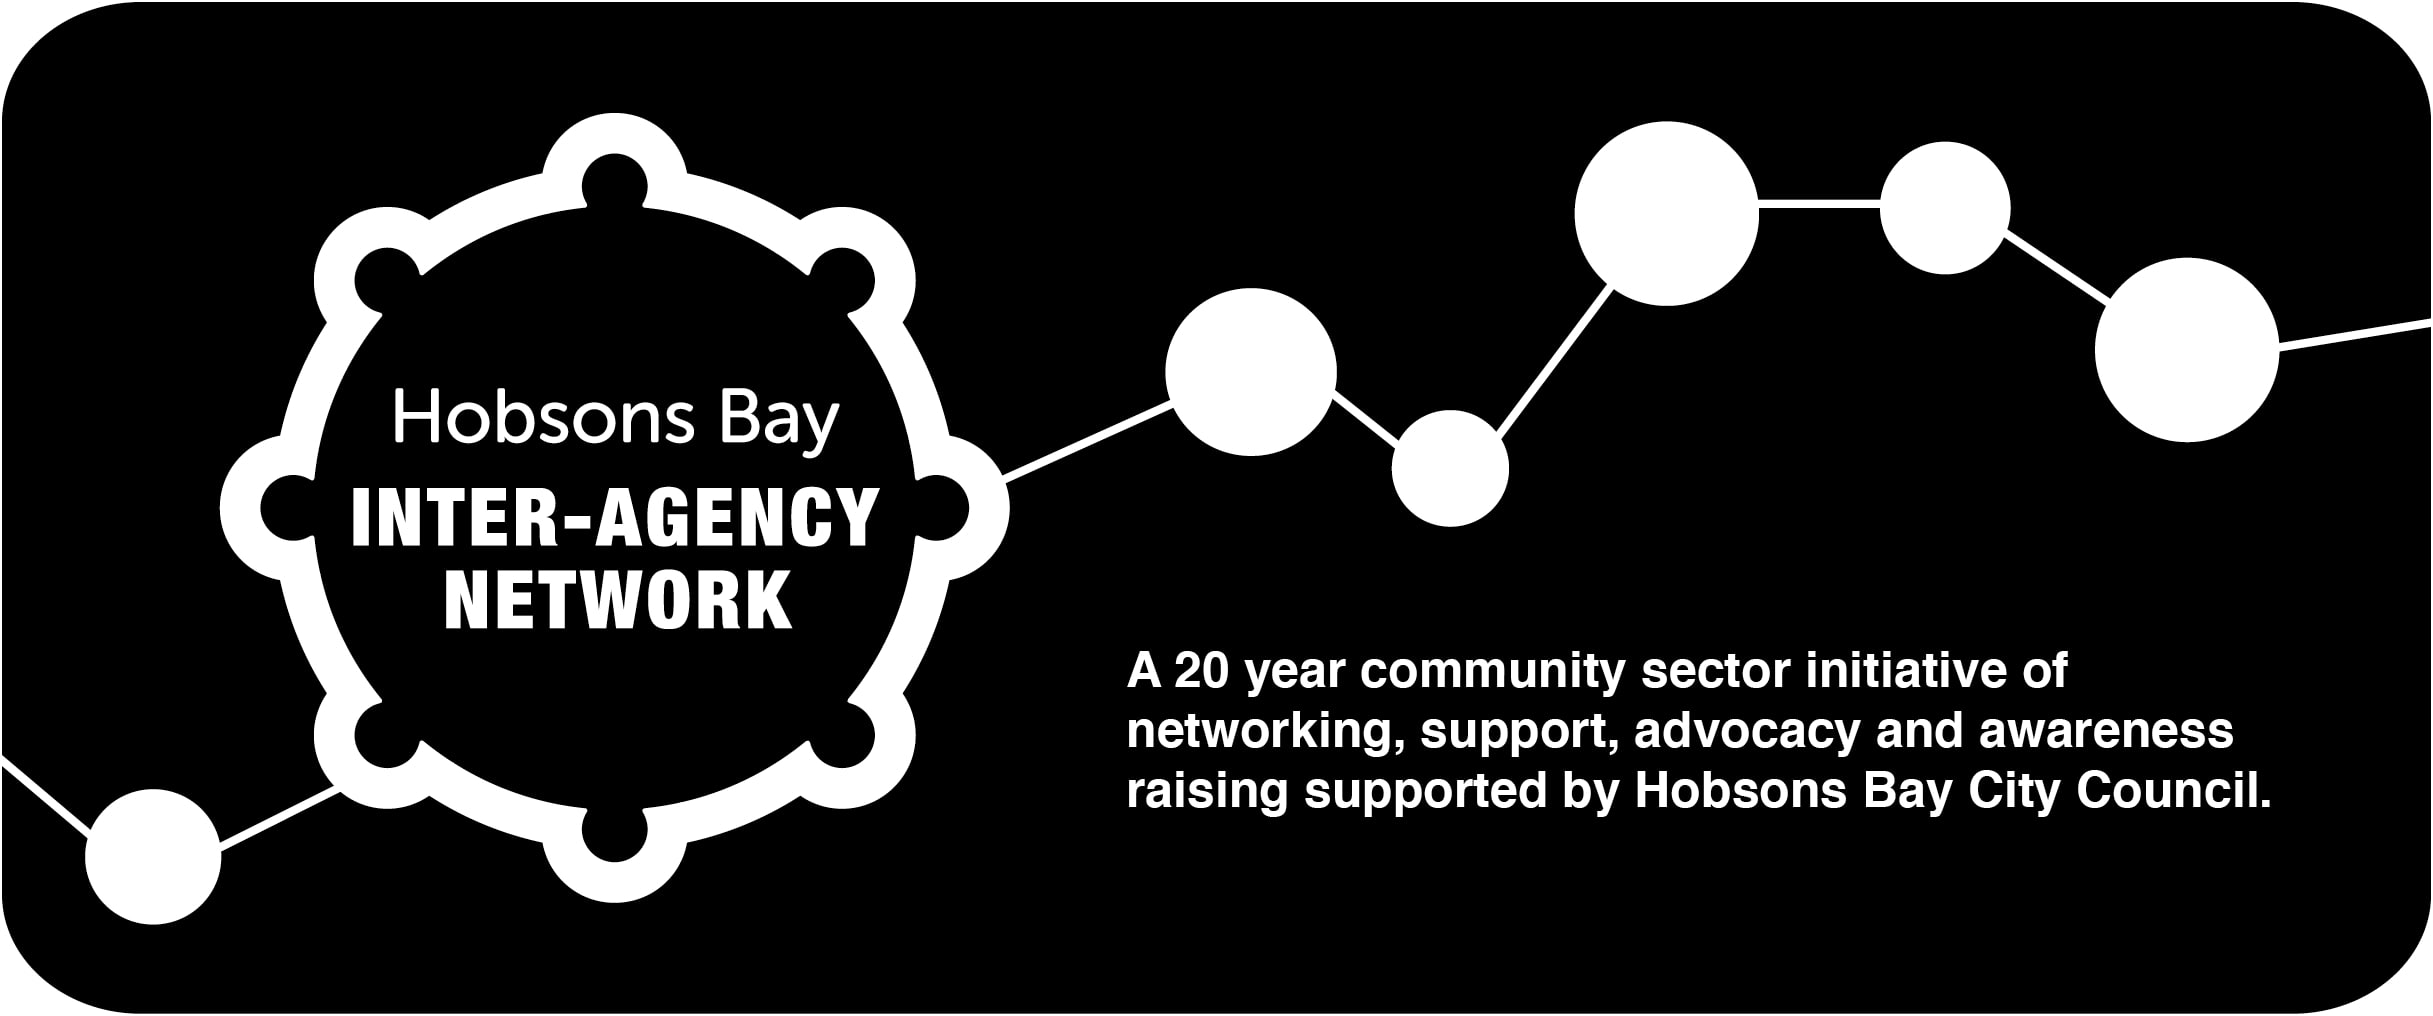 Hobsons Bay Inter Agency Network Logo 002